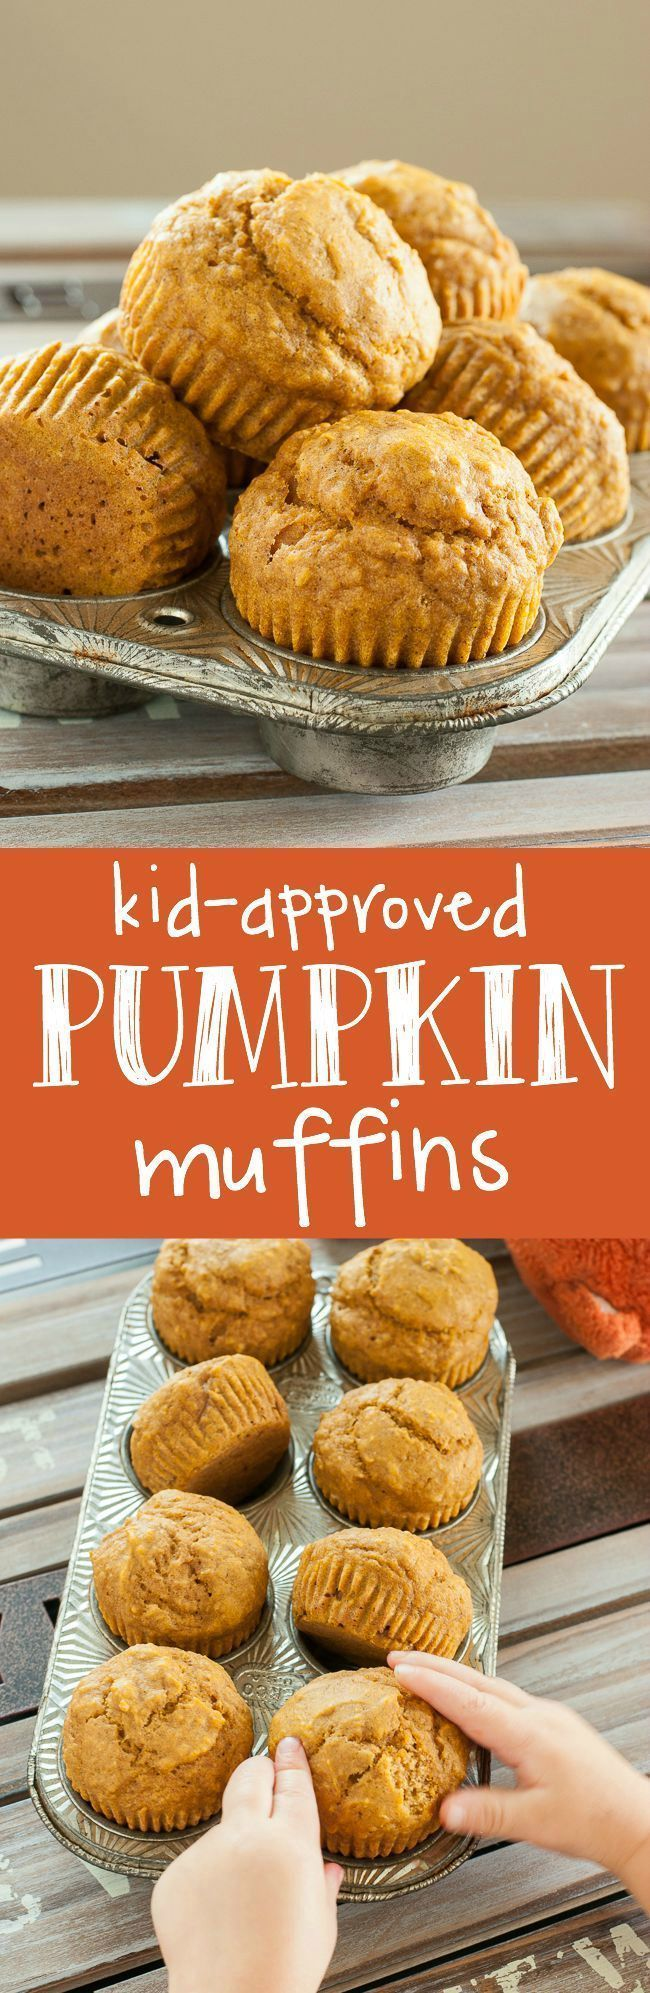 We absolutely LOVE these naturally sweet pumpkin muffins! Great for a grab and go breakfast or snack for kids and adults <3